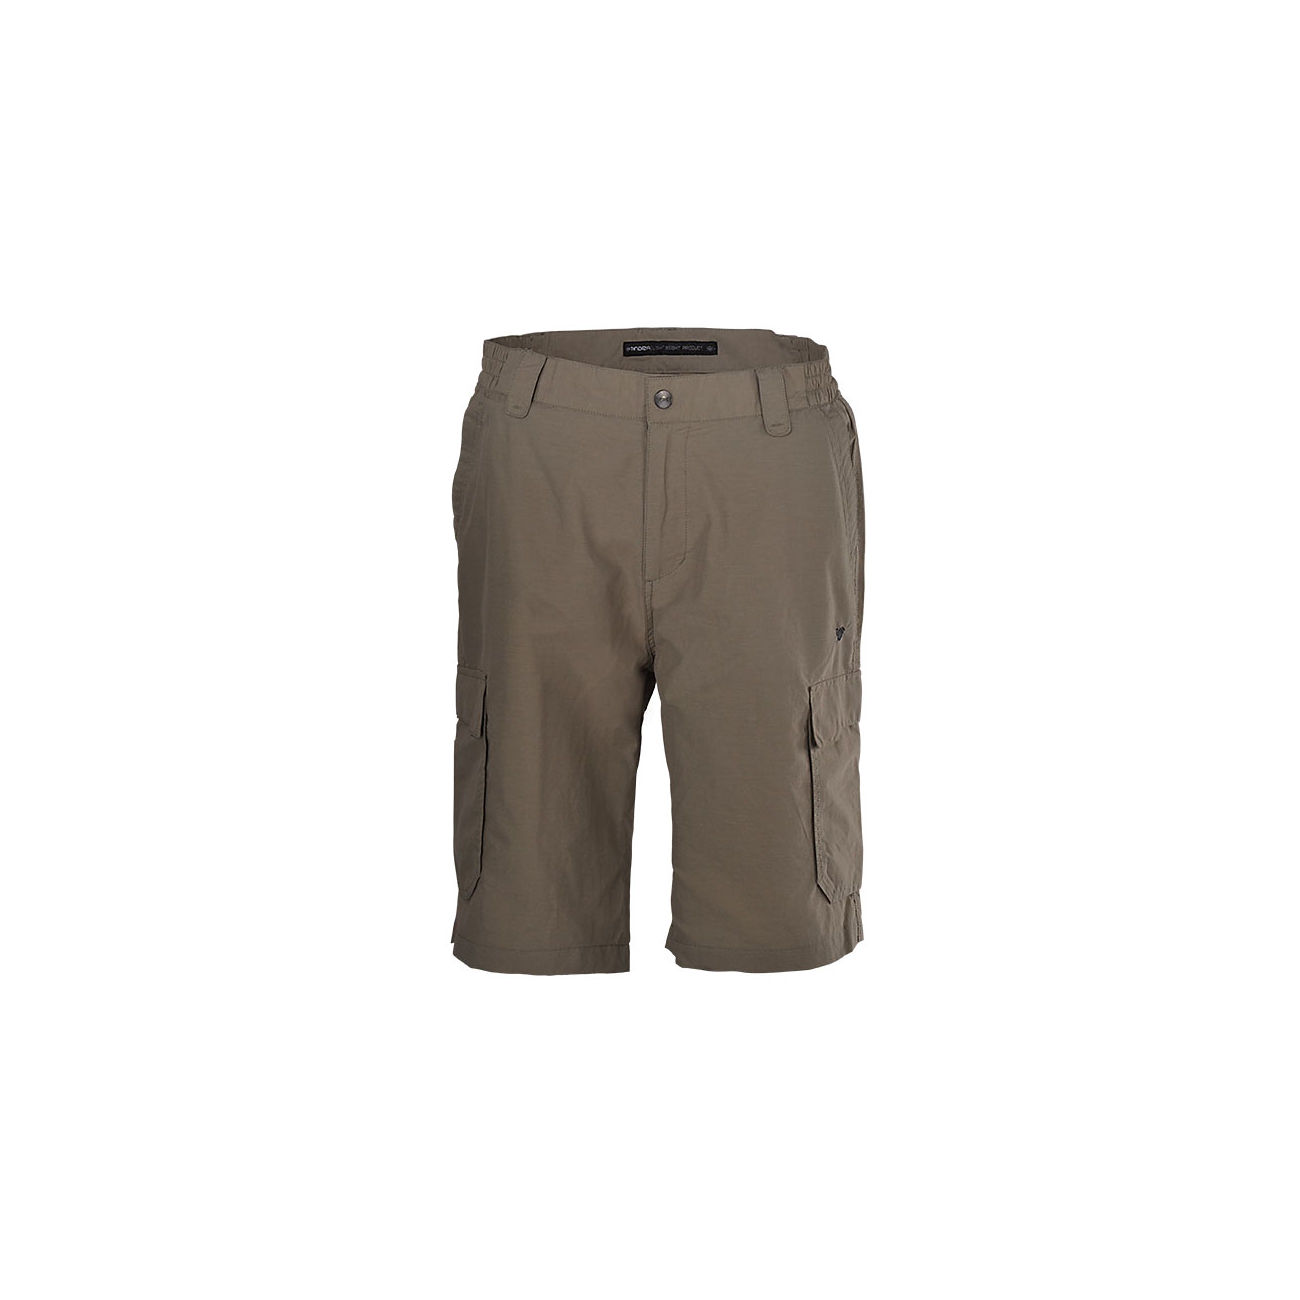 Tindra Eiger Men's Shorts, Kit